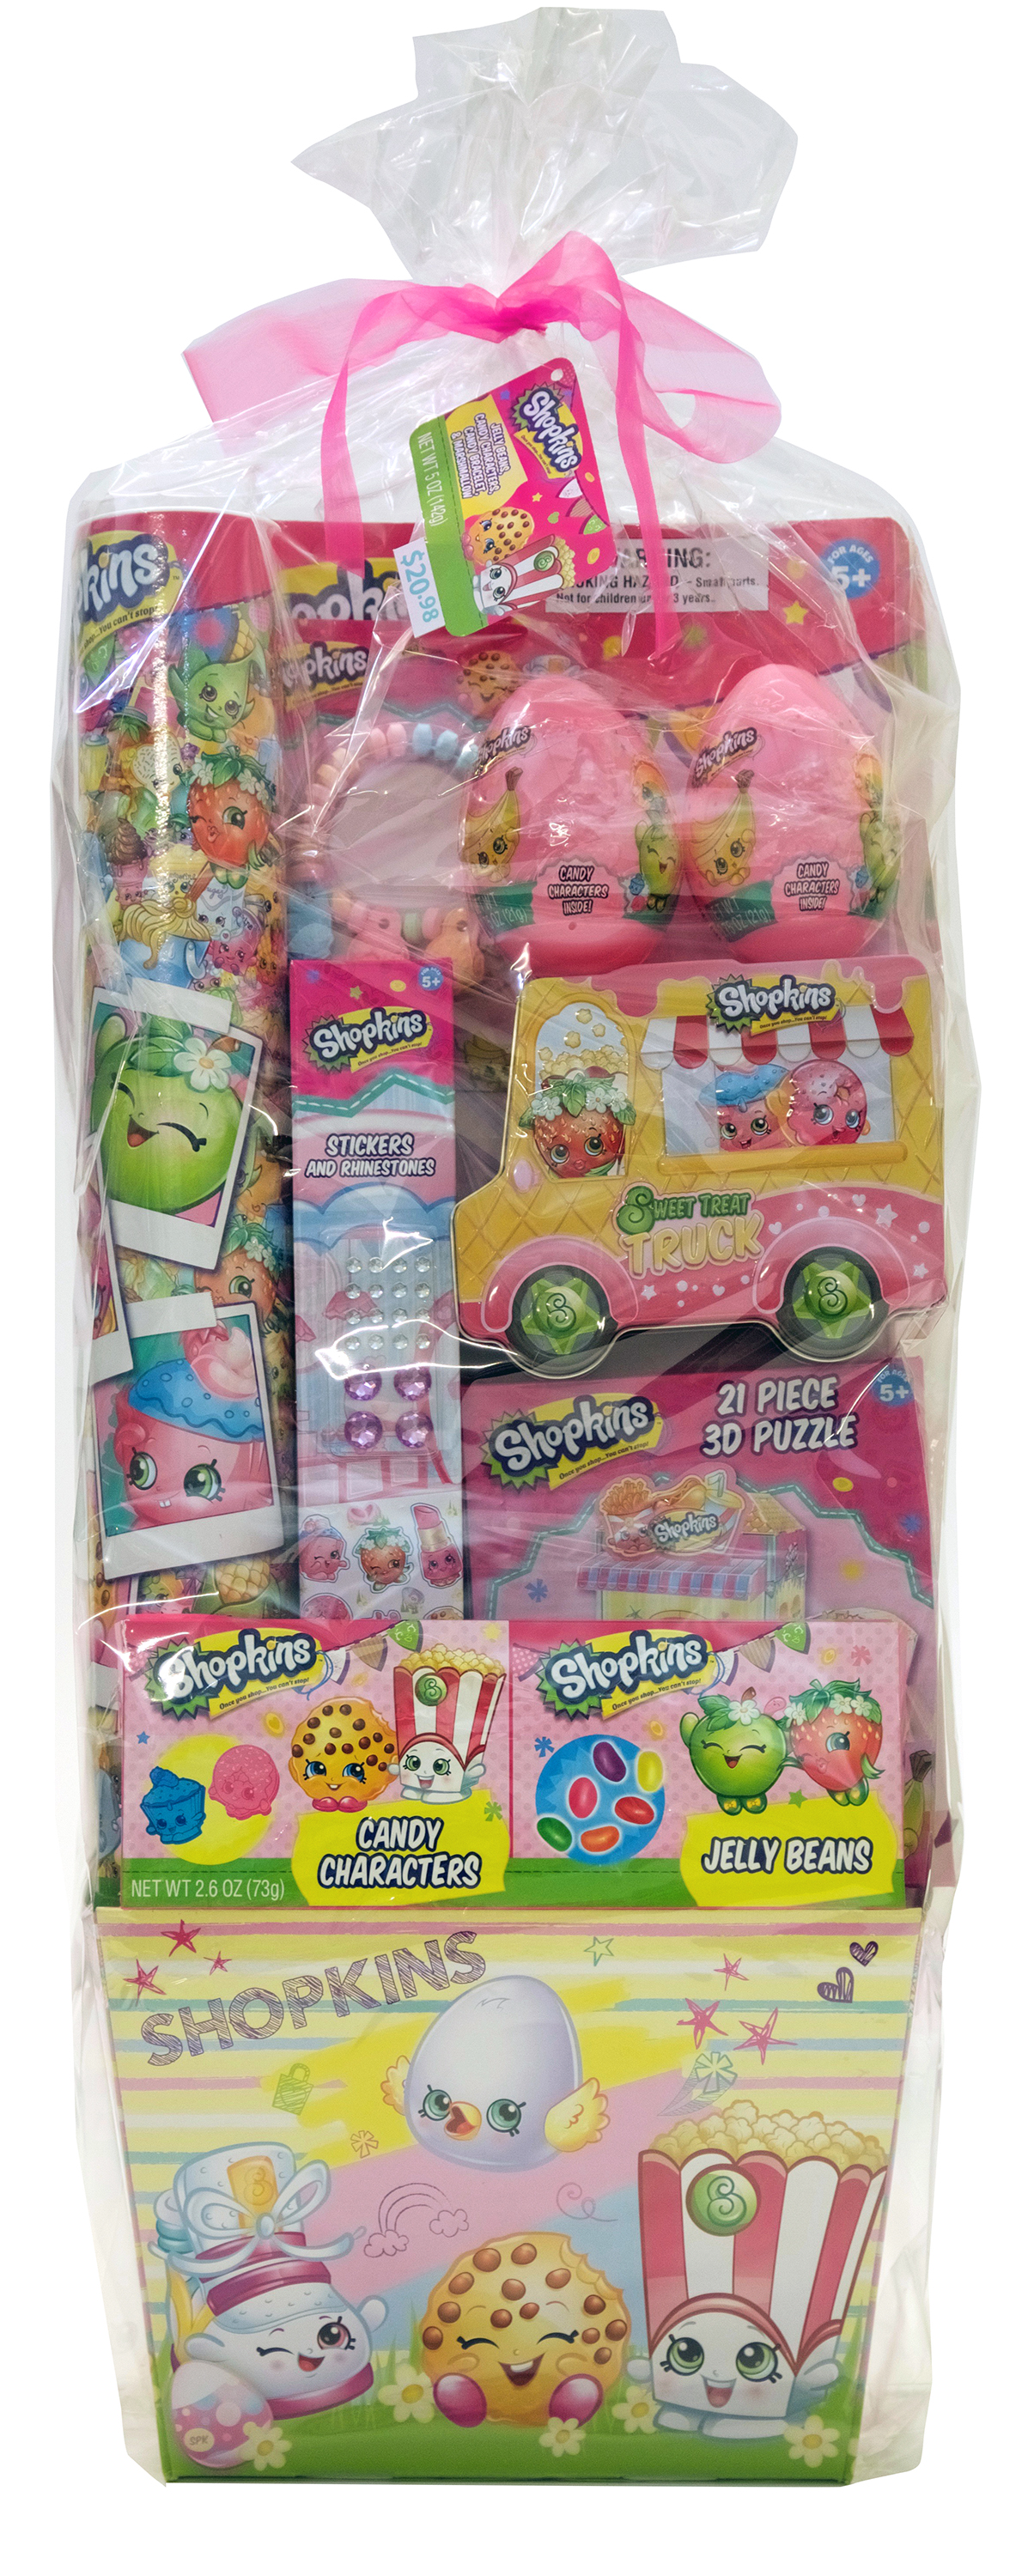 Shopkins Toys and Candy Filled Easter Basket